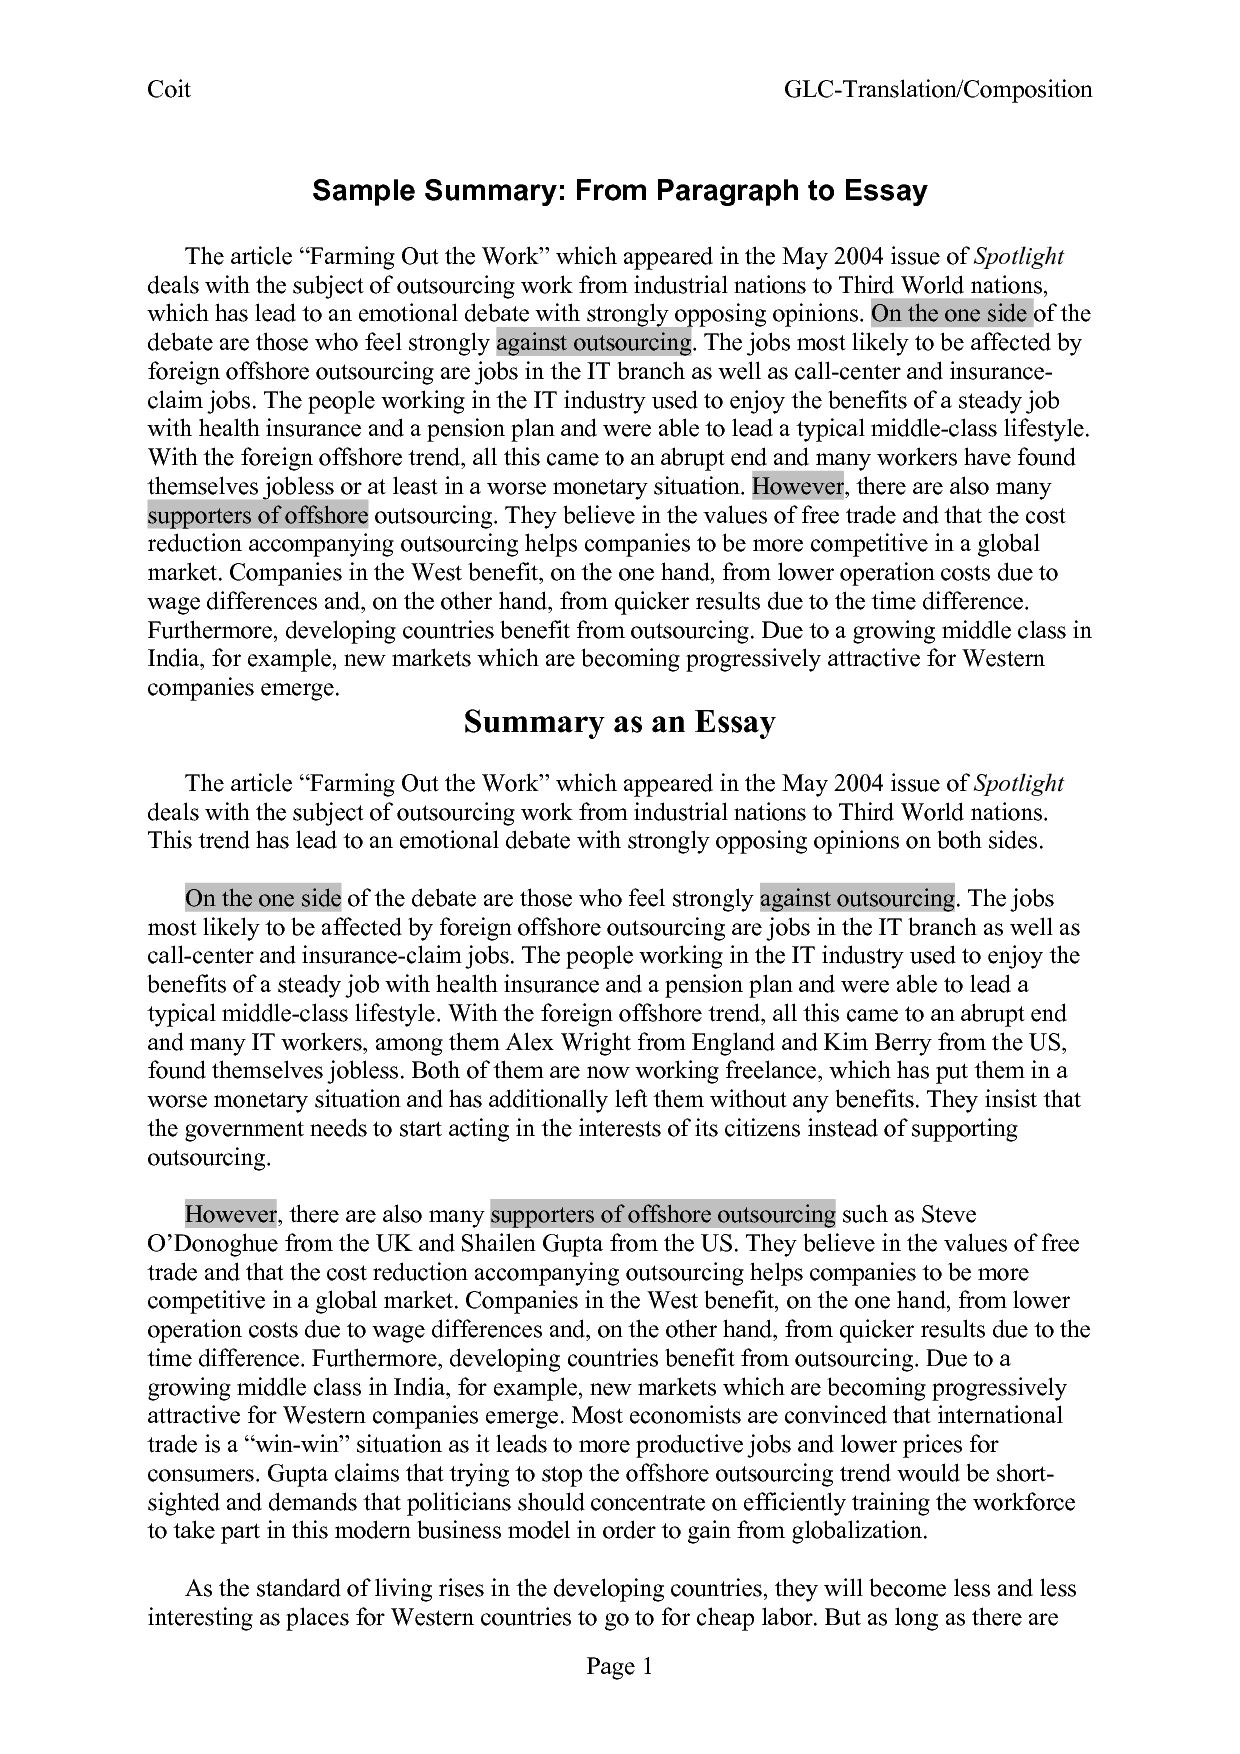 005 Essay Example Sample Summary Papers 248300 Imposing Research Paper Analysis Examples Executive Full